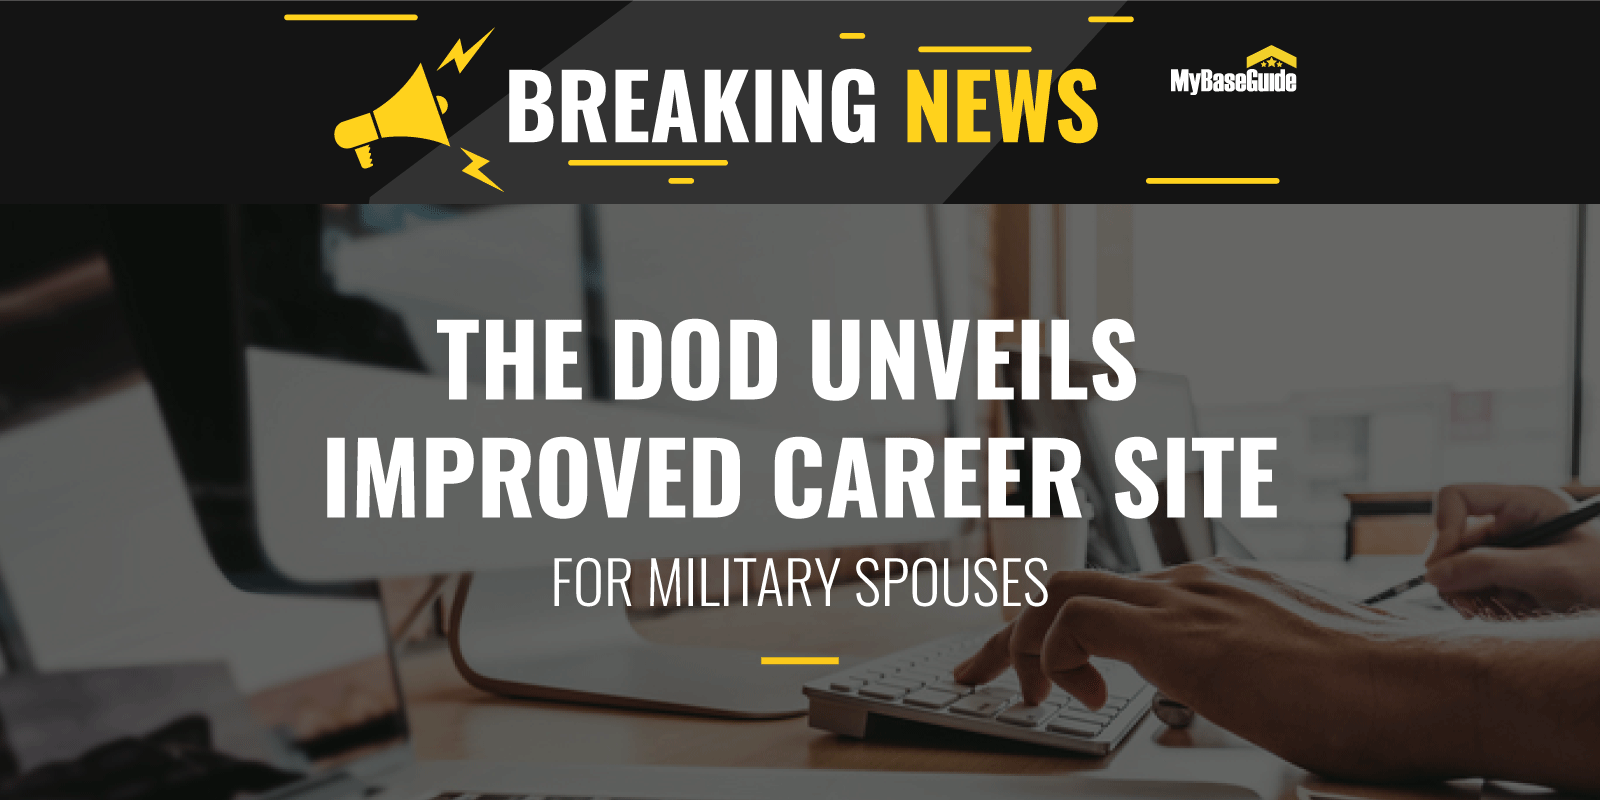 The DOD Unveils Improved Career Site for Military Spouses!